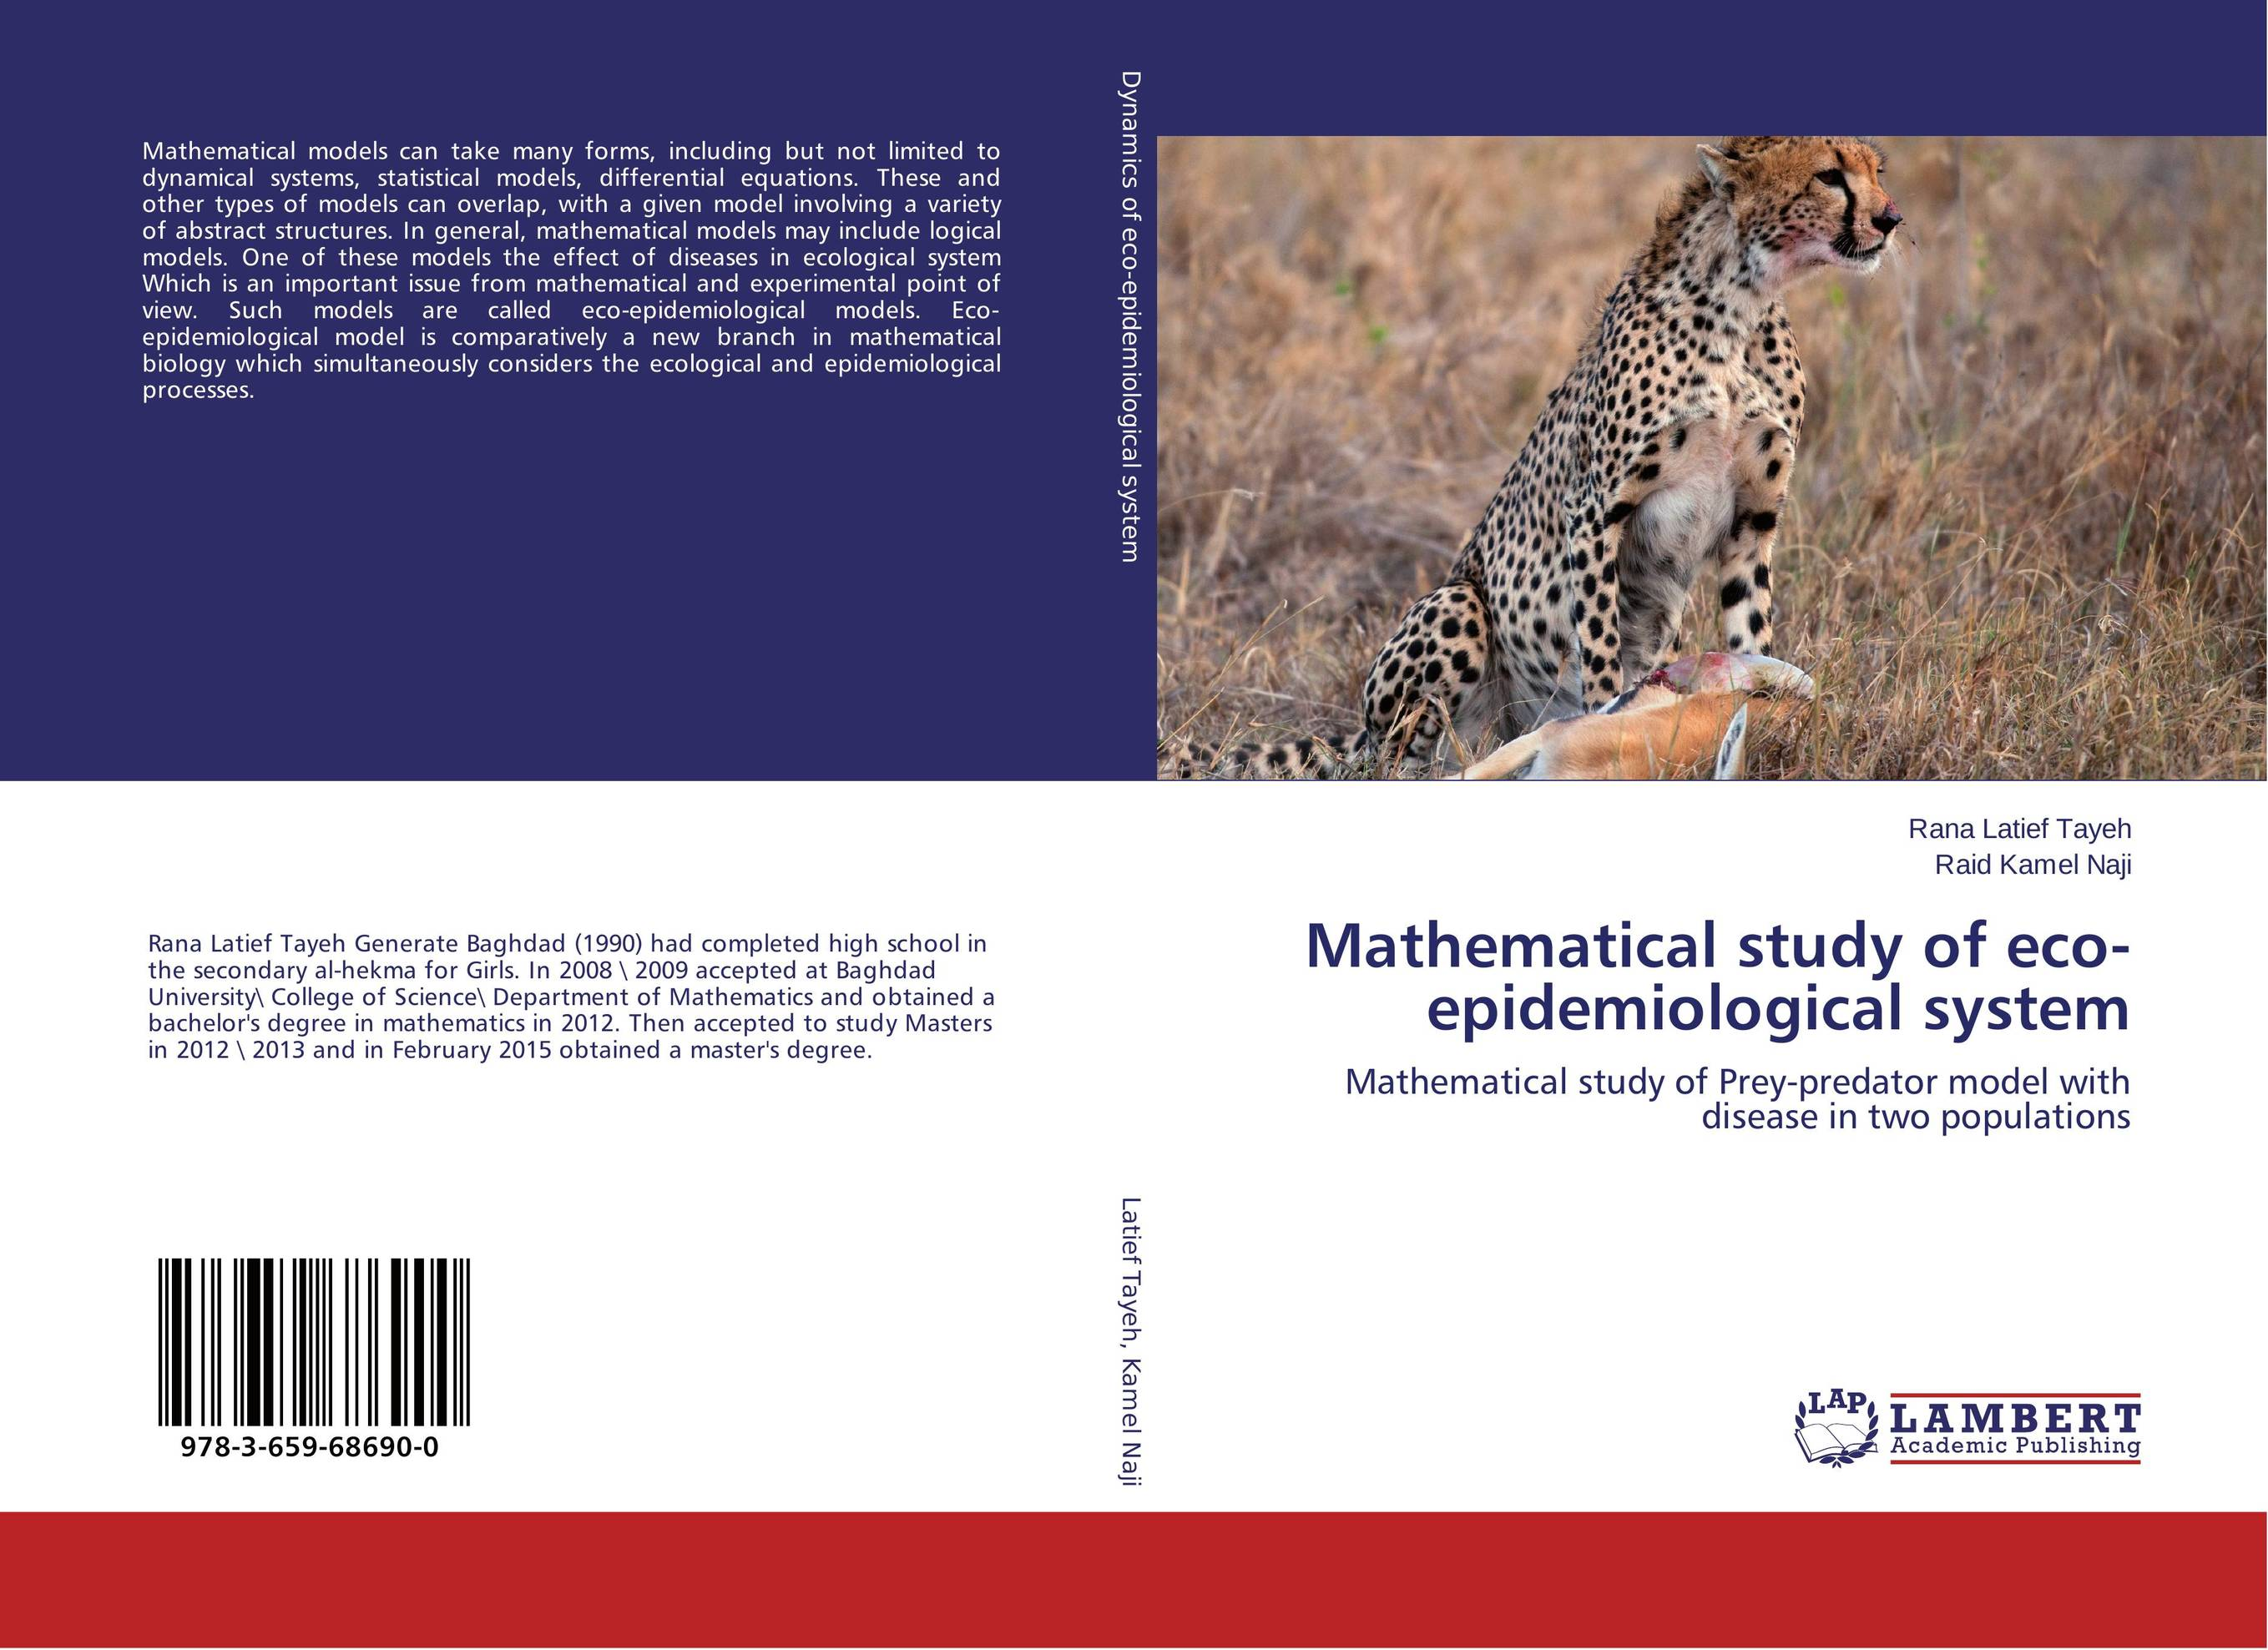 Mathematical study of eco-epidemiological system an epidemiological study of natural deaths in limpopo